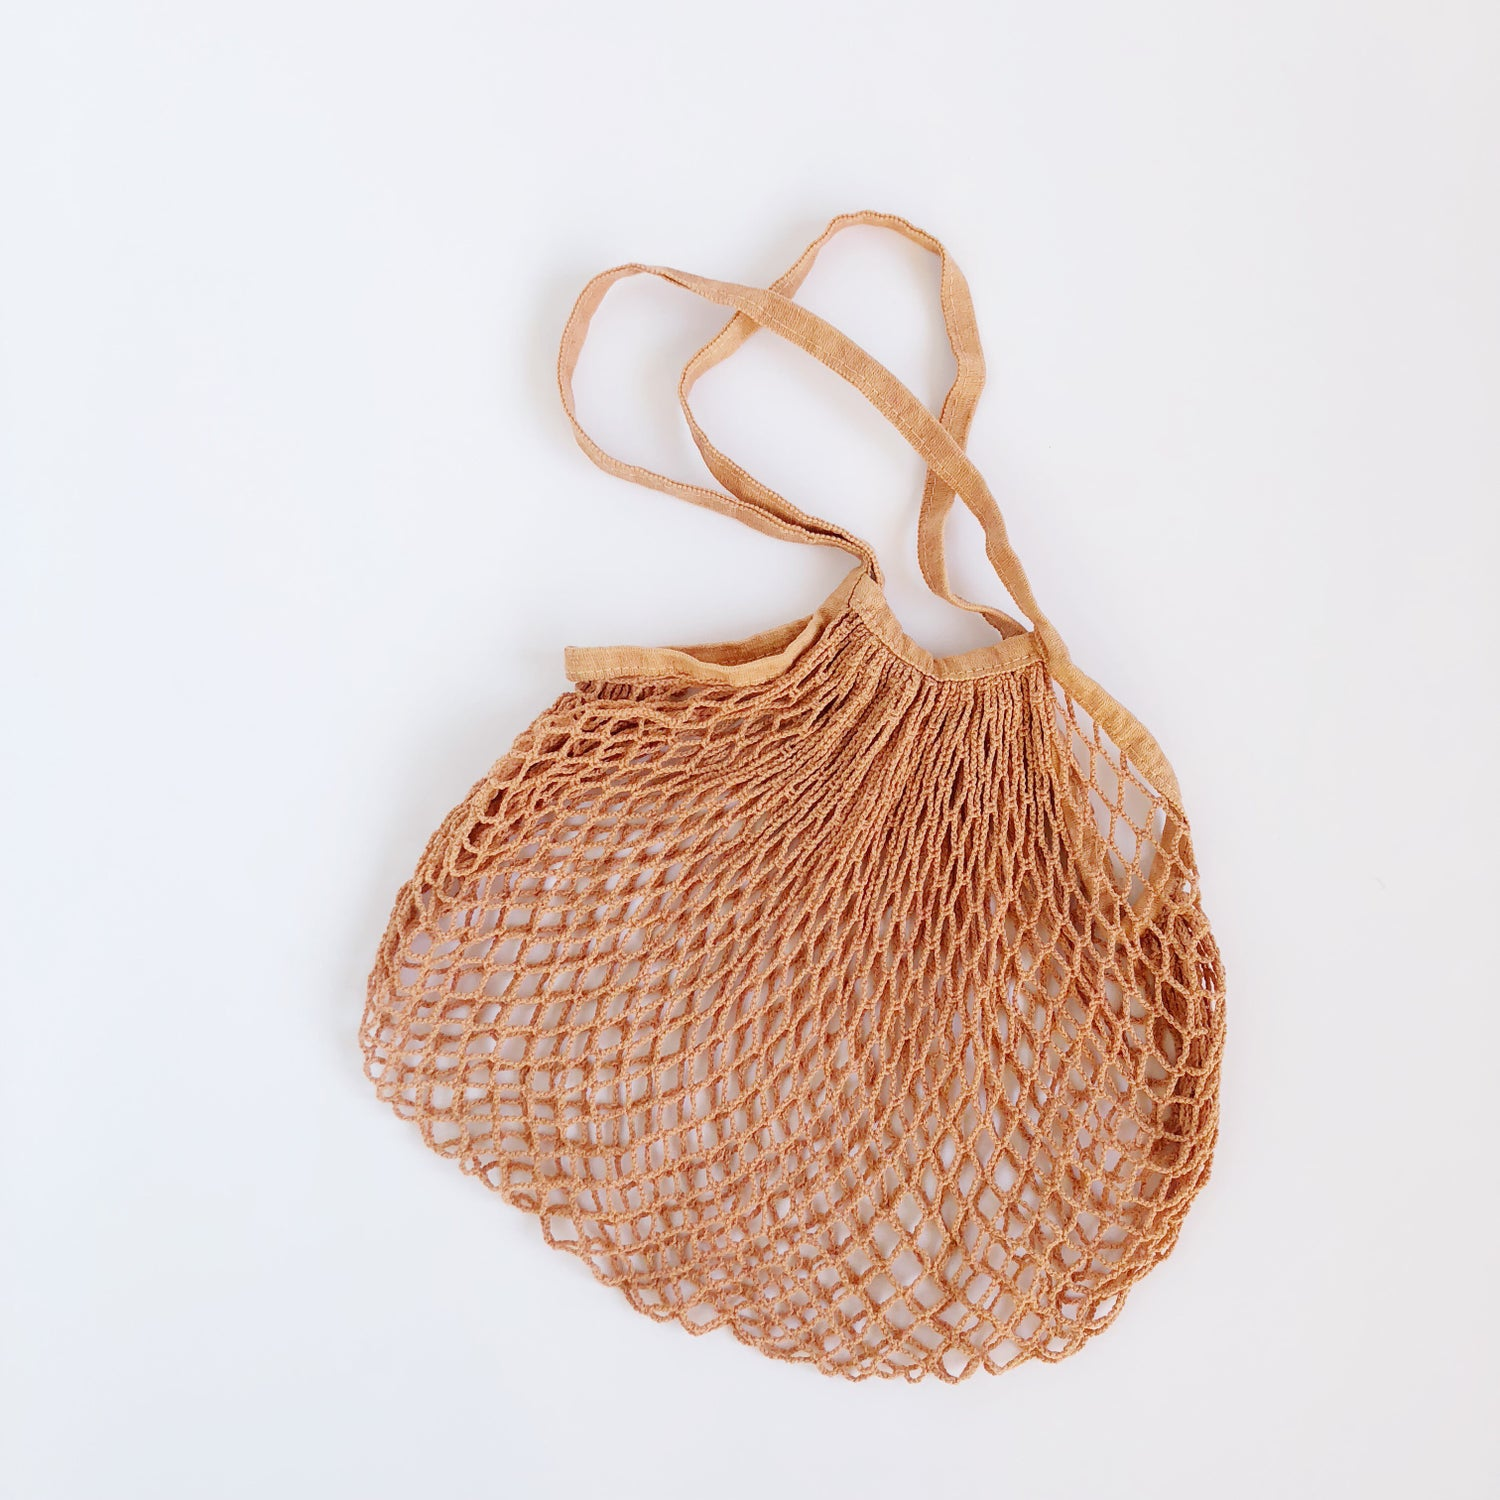 Image of Naturally Dyed Market Bag